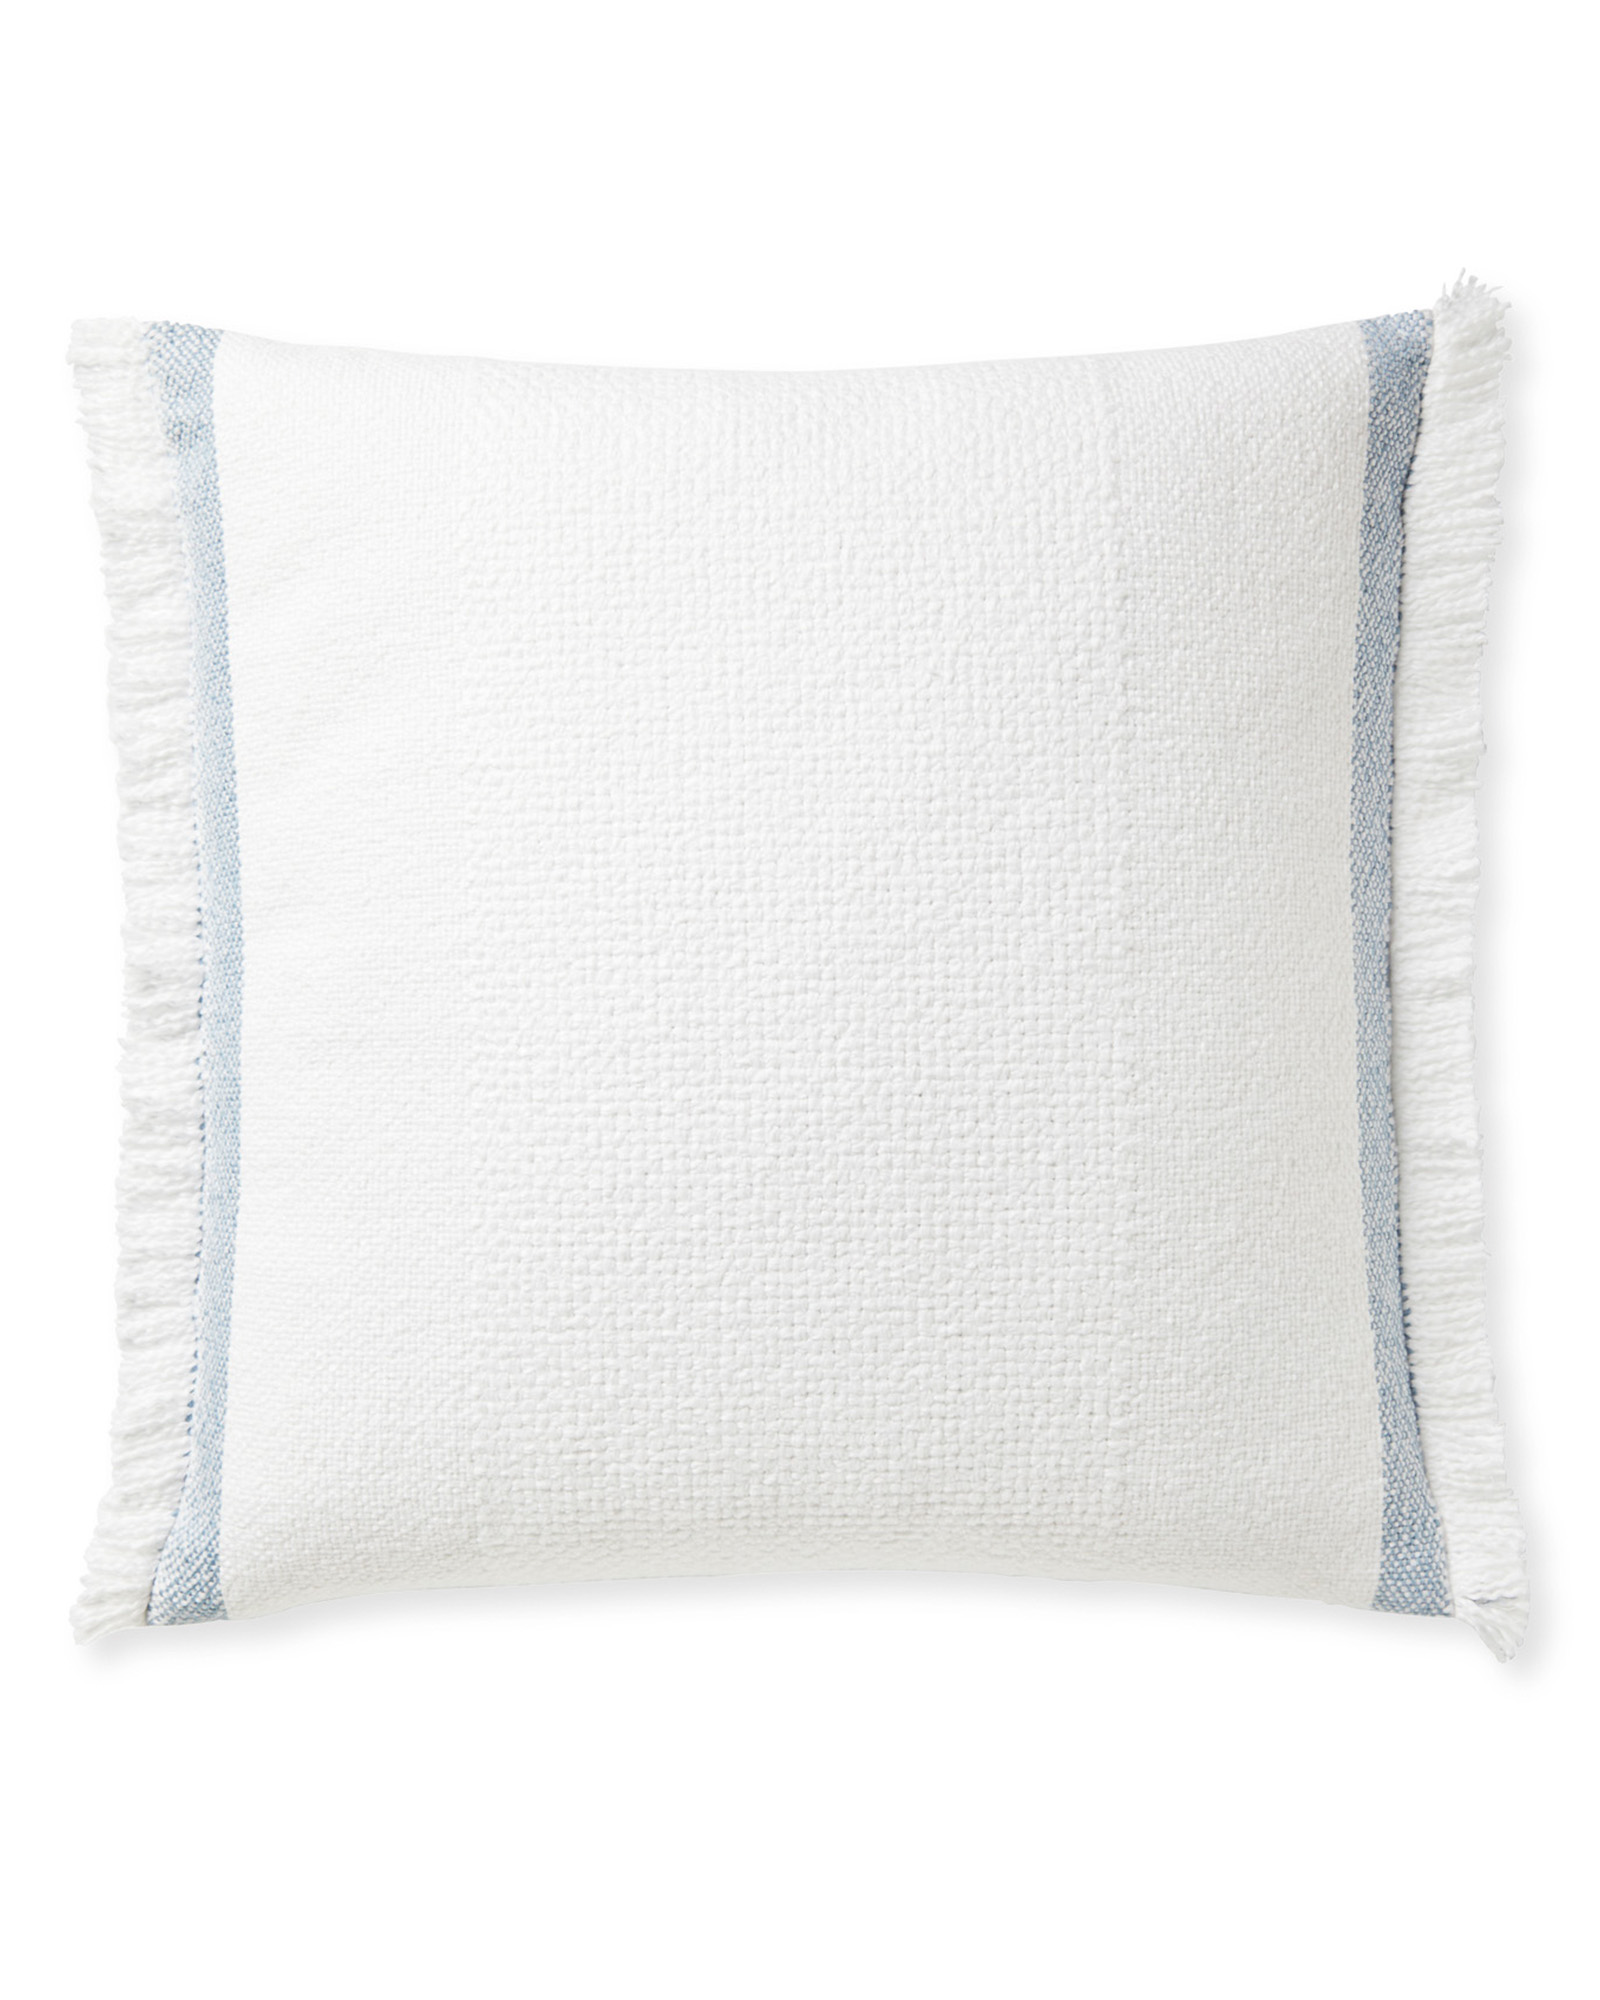 Corfu Pillow Cover, Ivory